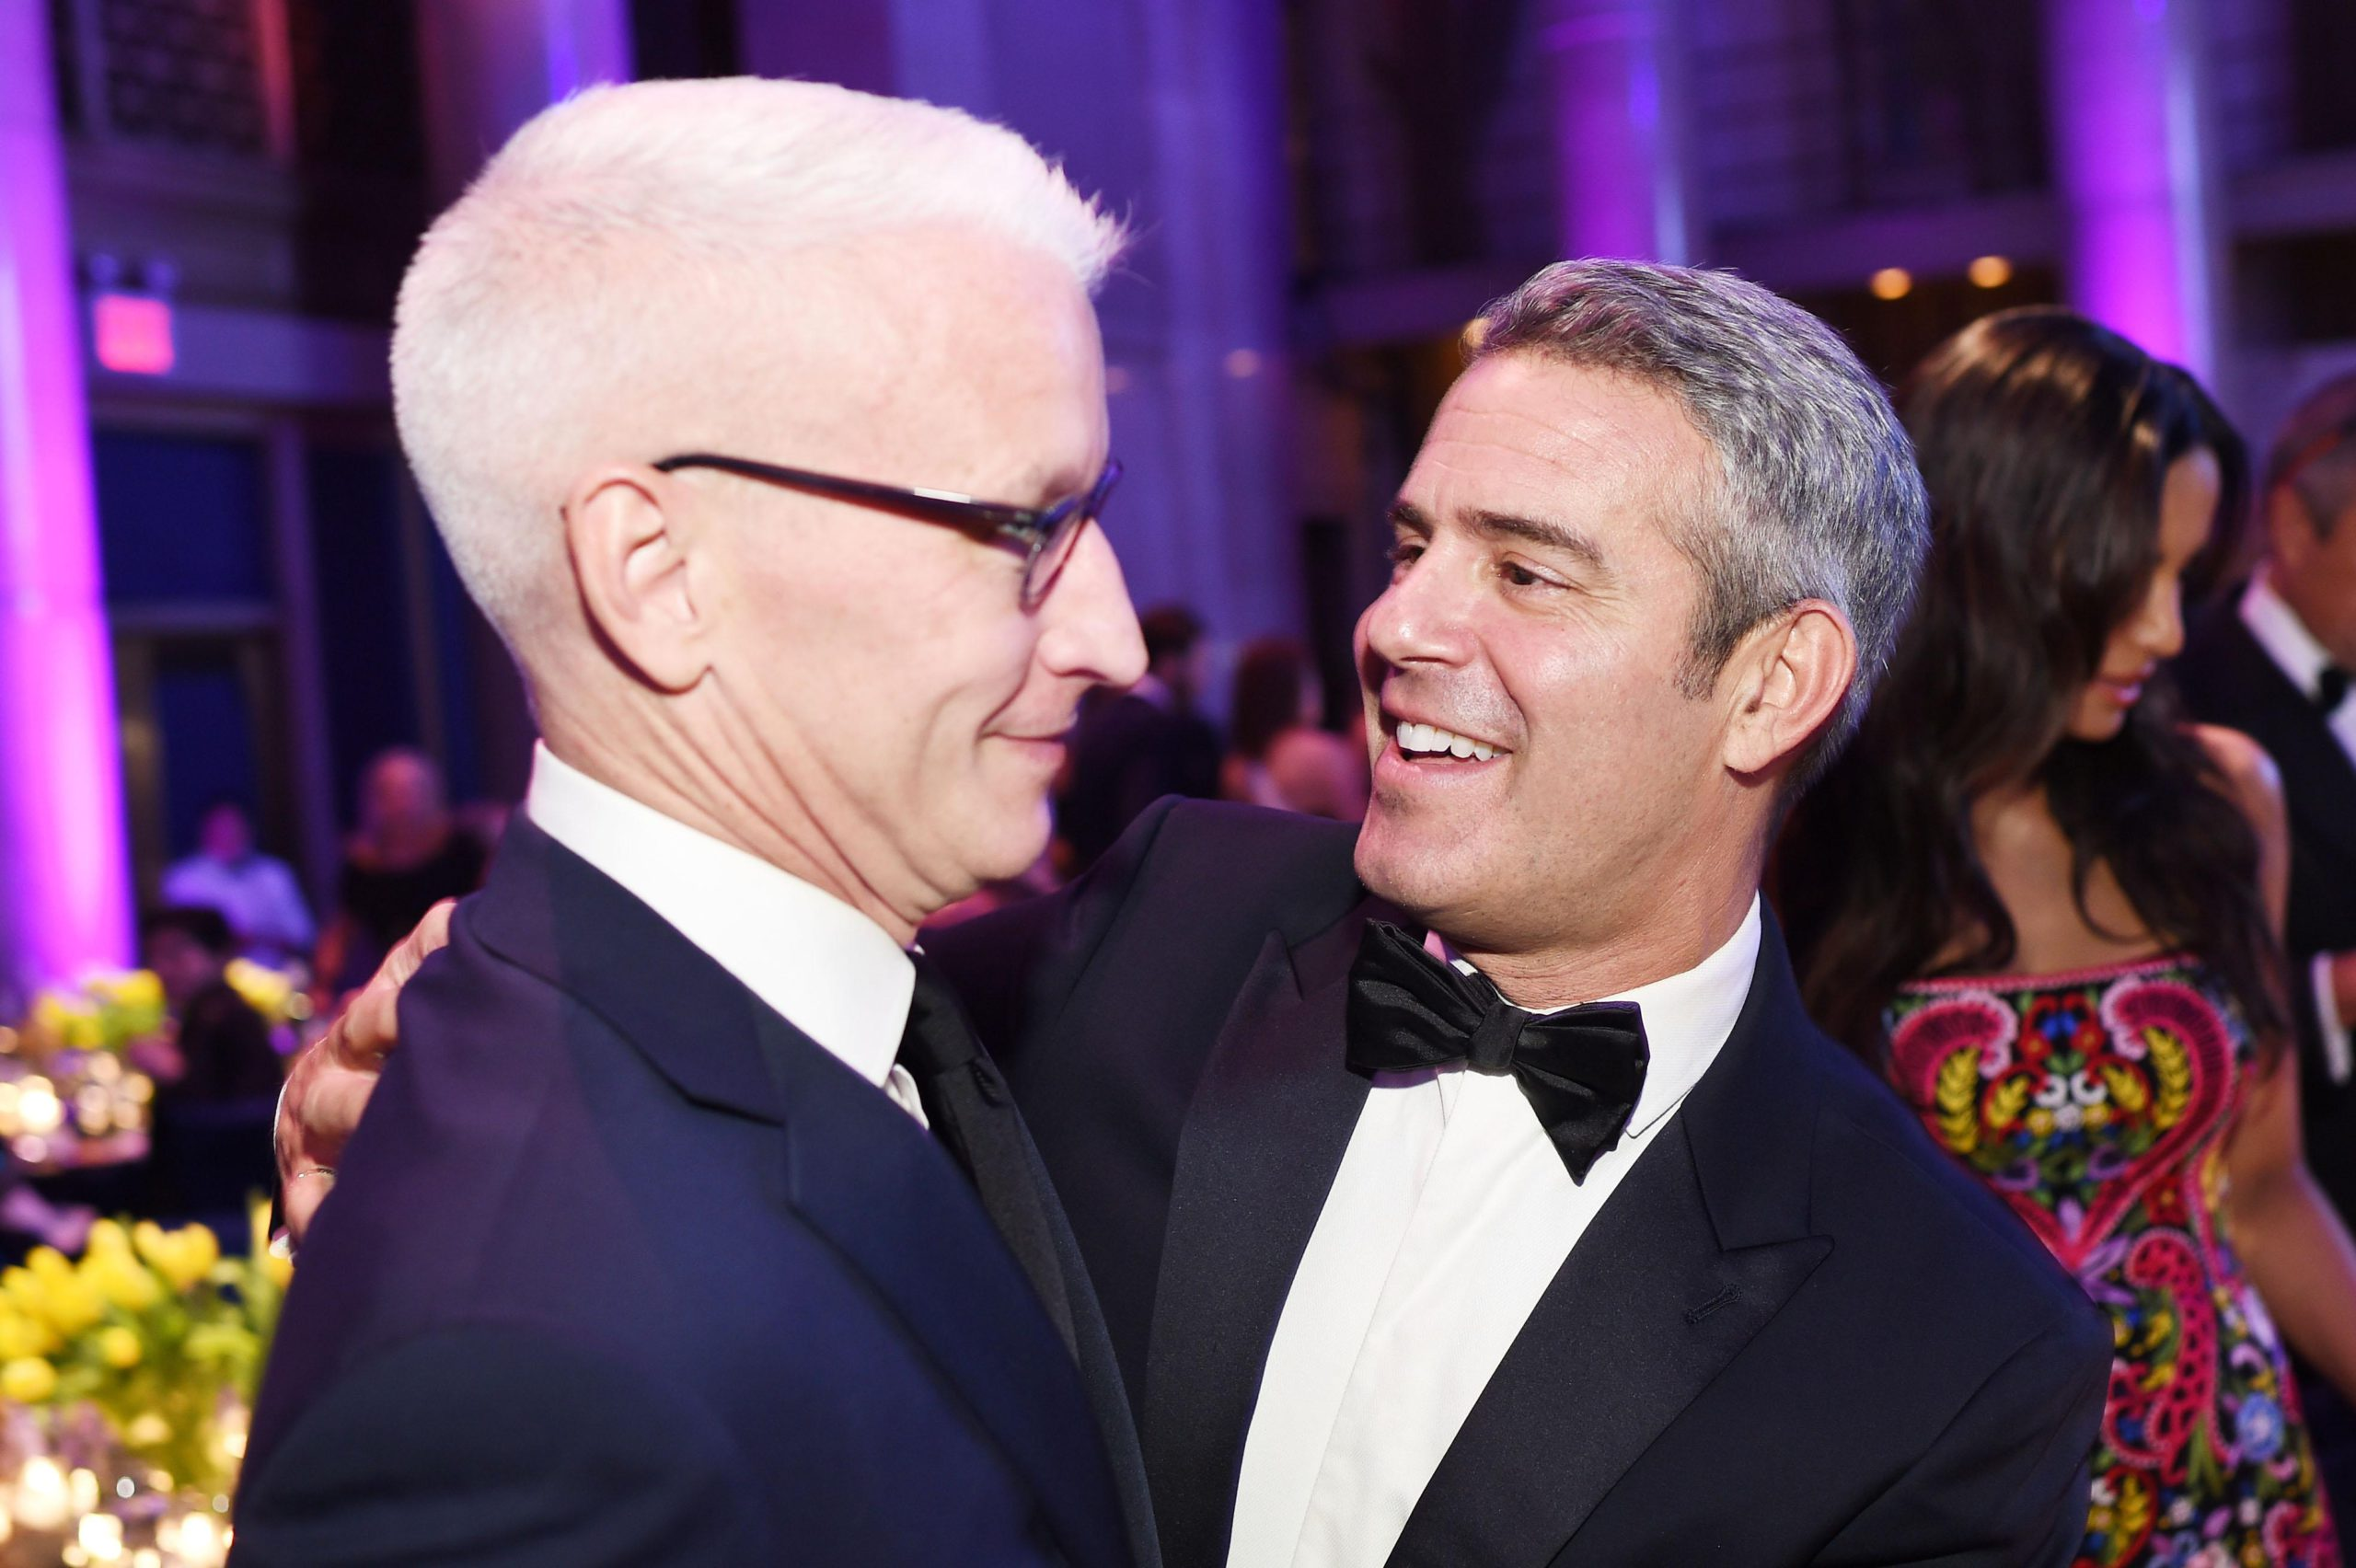 Who is Anderson Cooper dating? Friends are hoping it to be old-friend and co-star